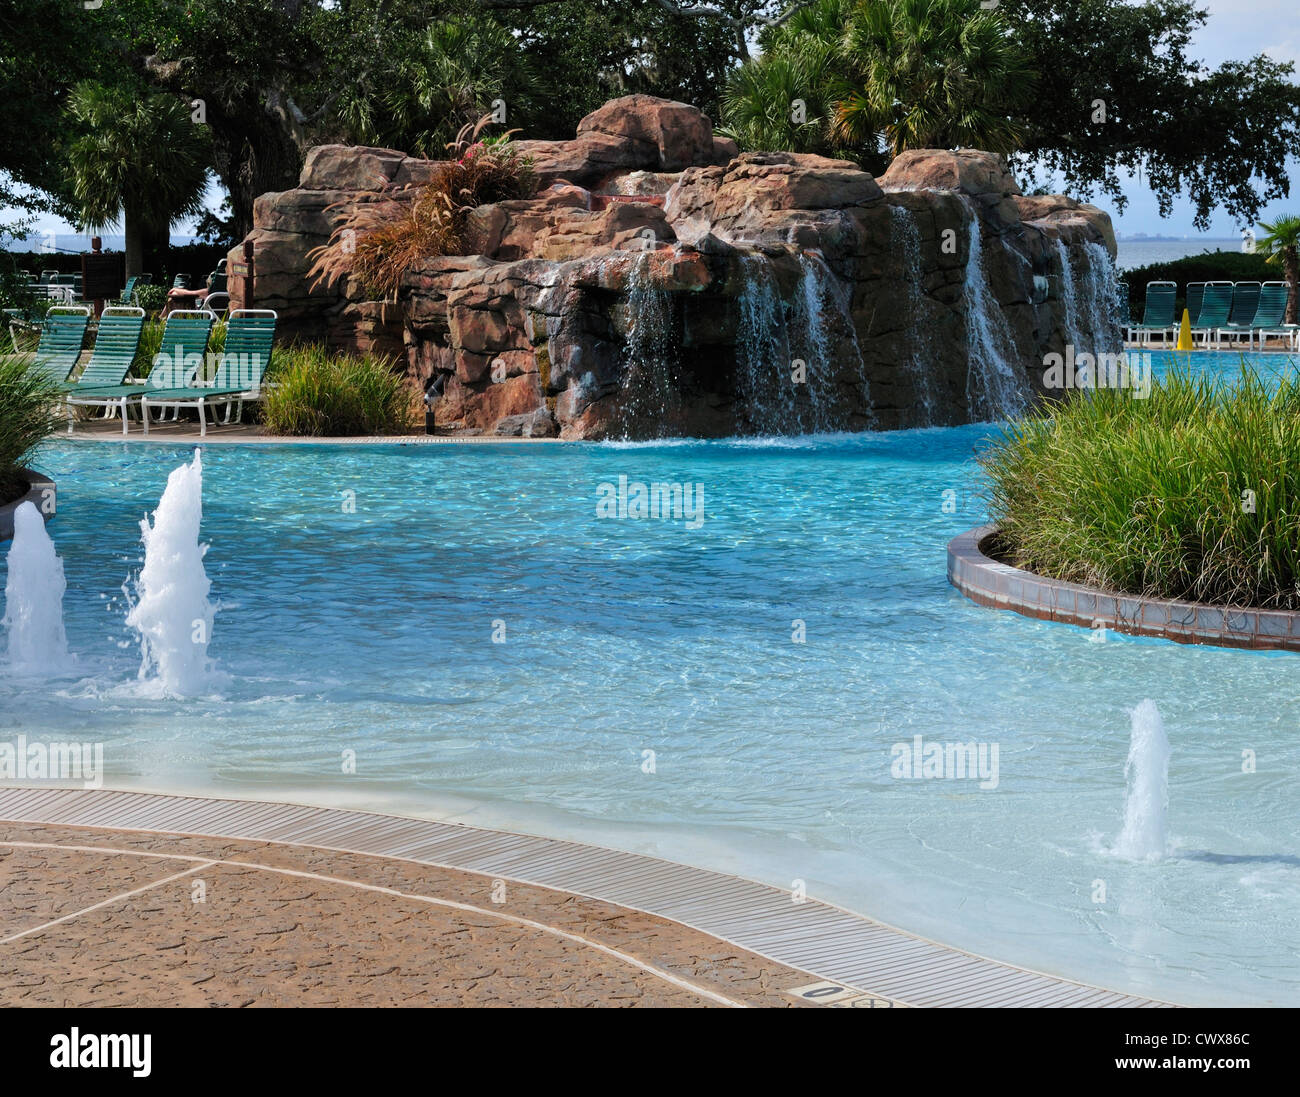 Spa Grand Hotel Pool High Resolution Stock Photography And Images Alamy